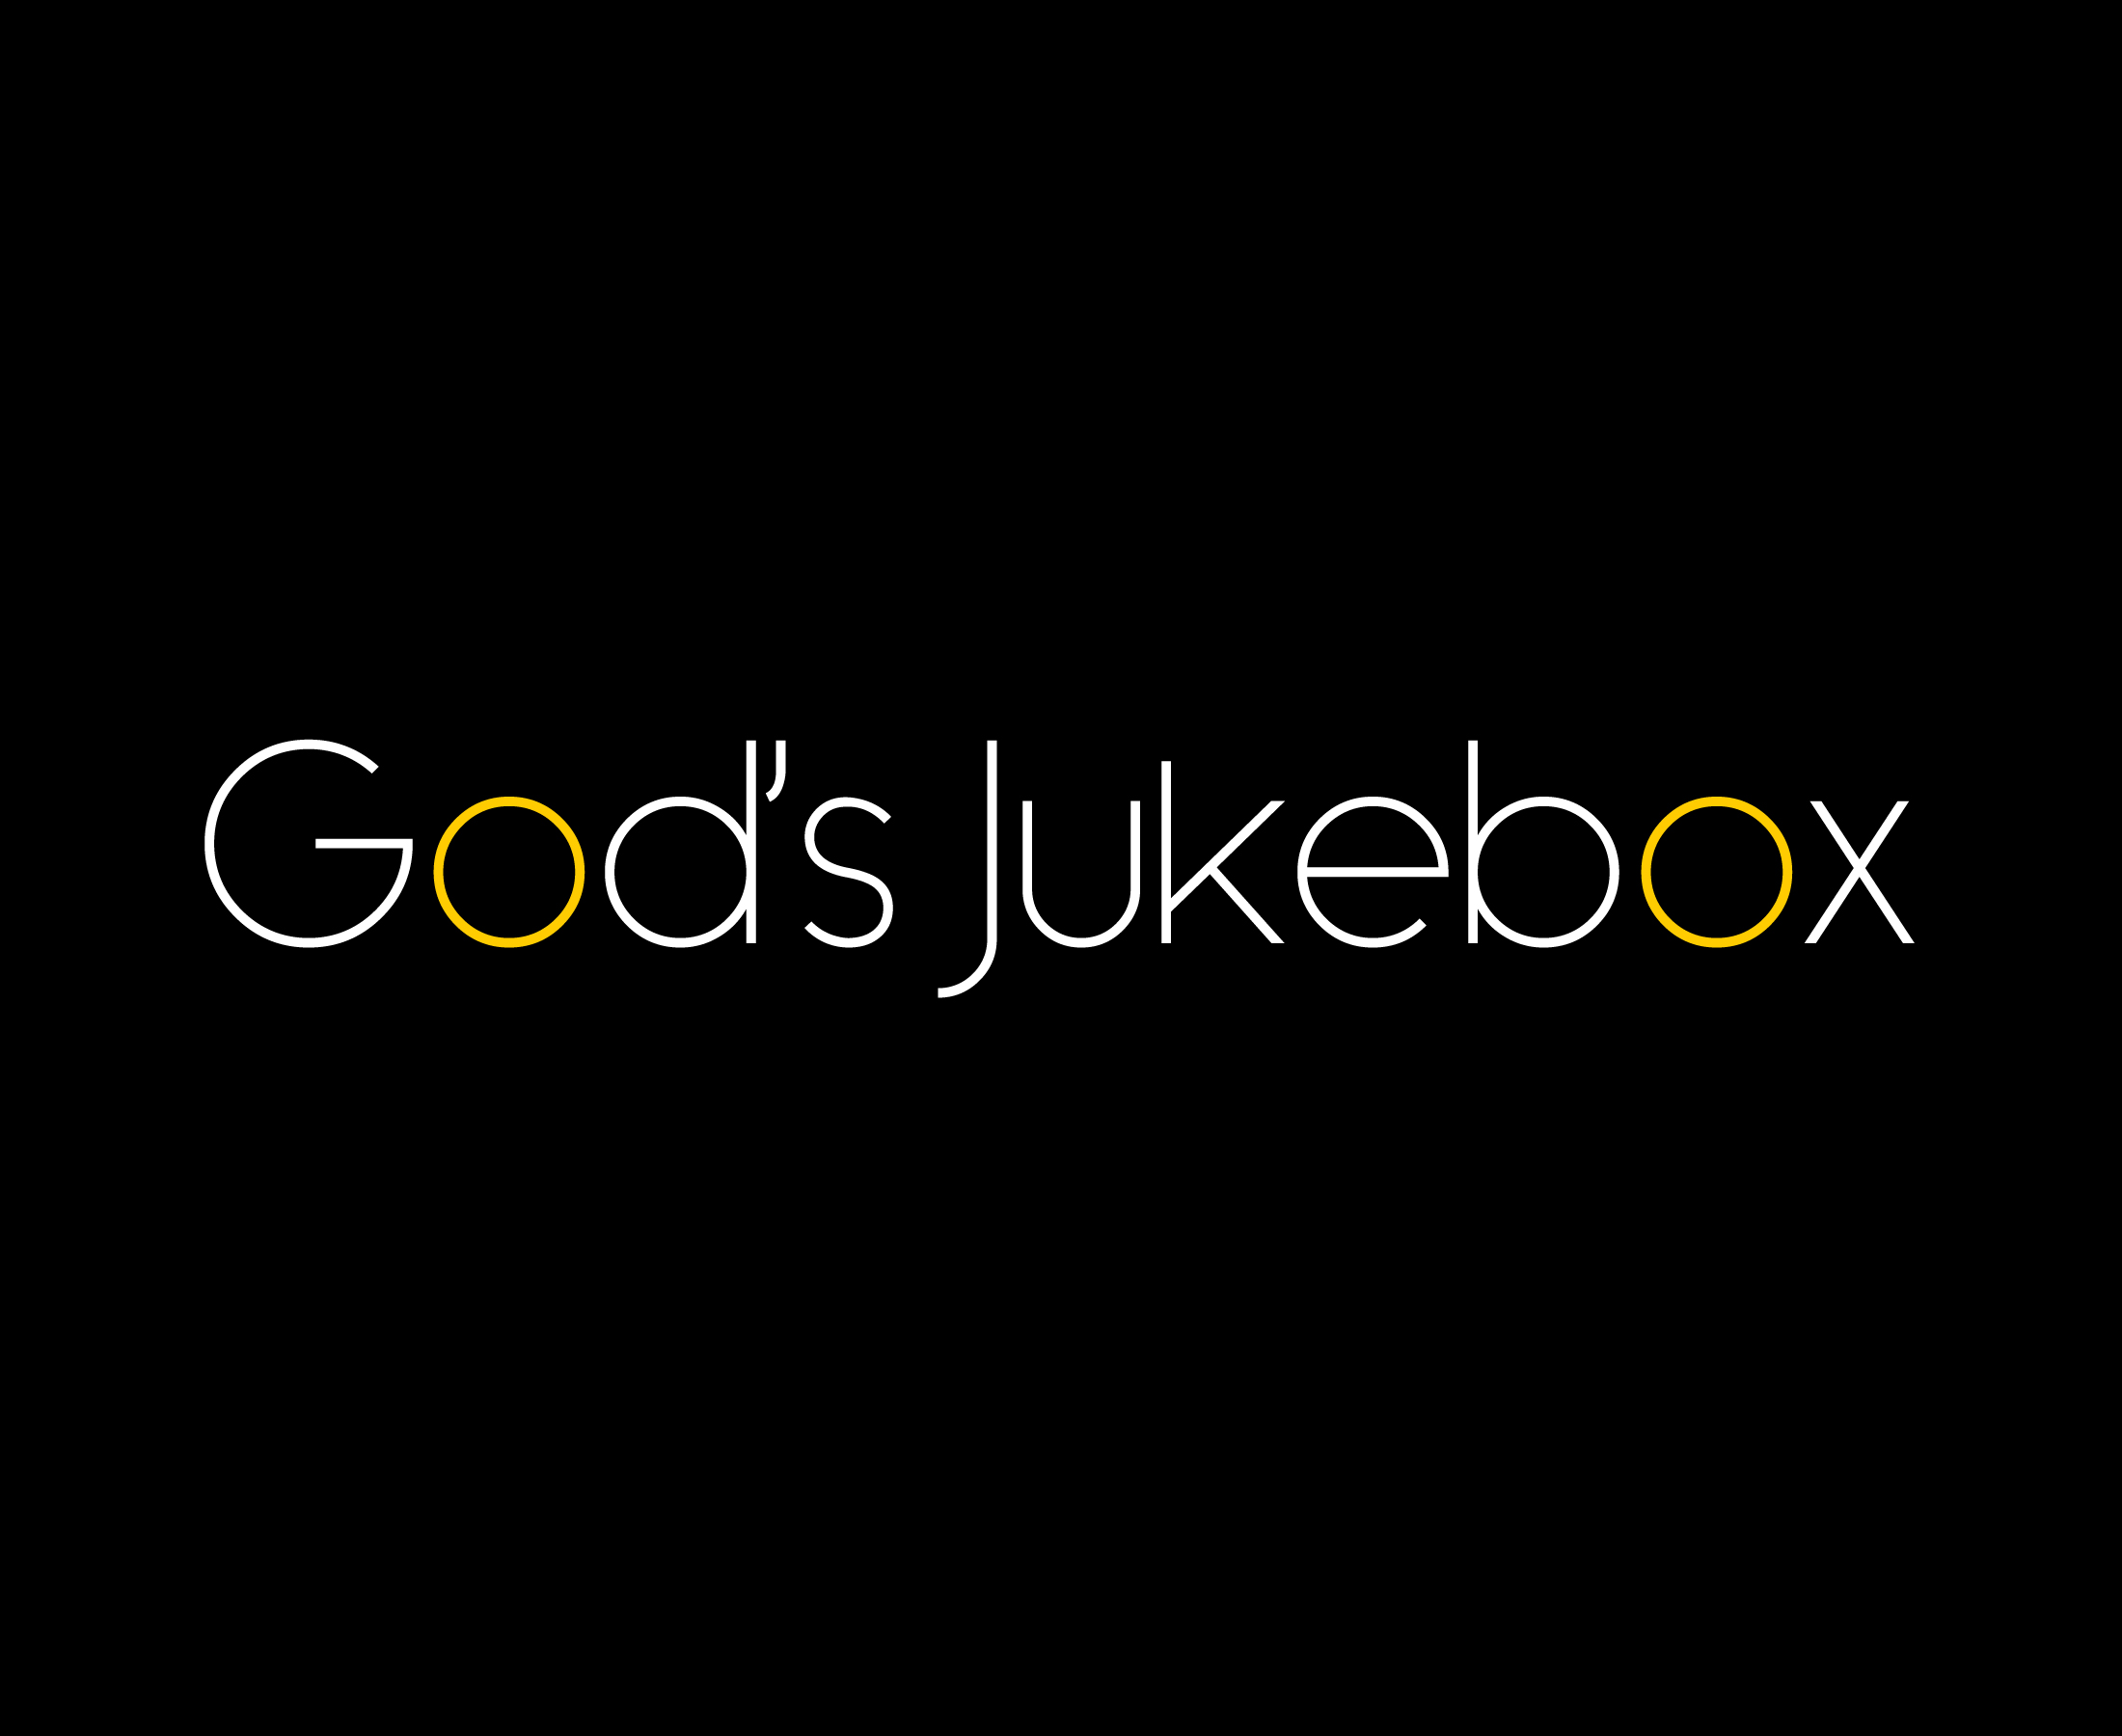 God's Jukebox